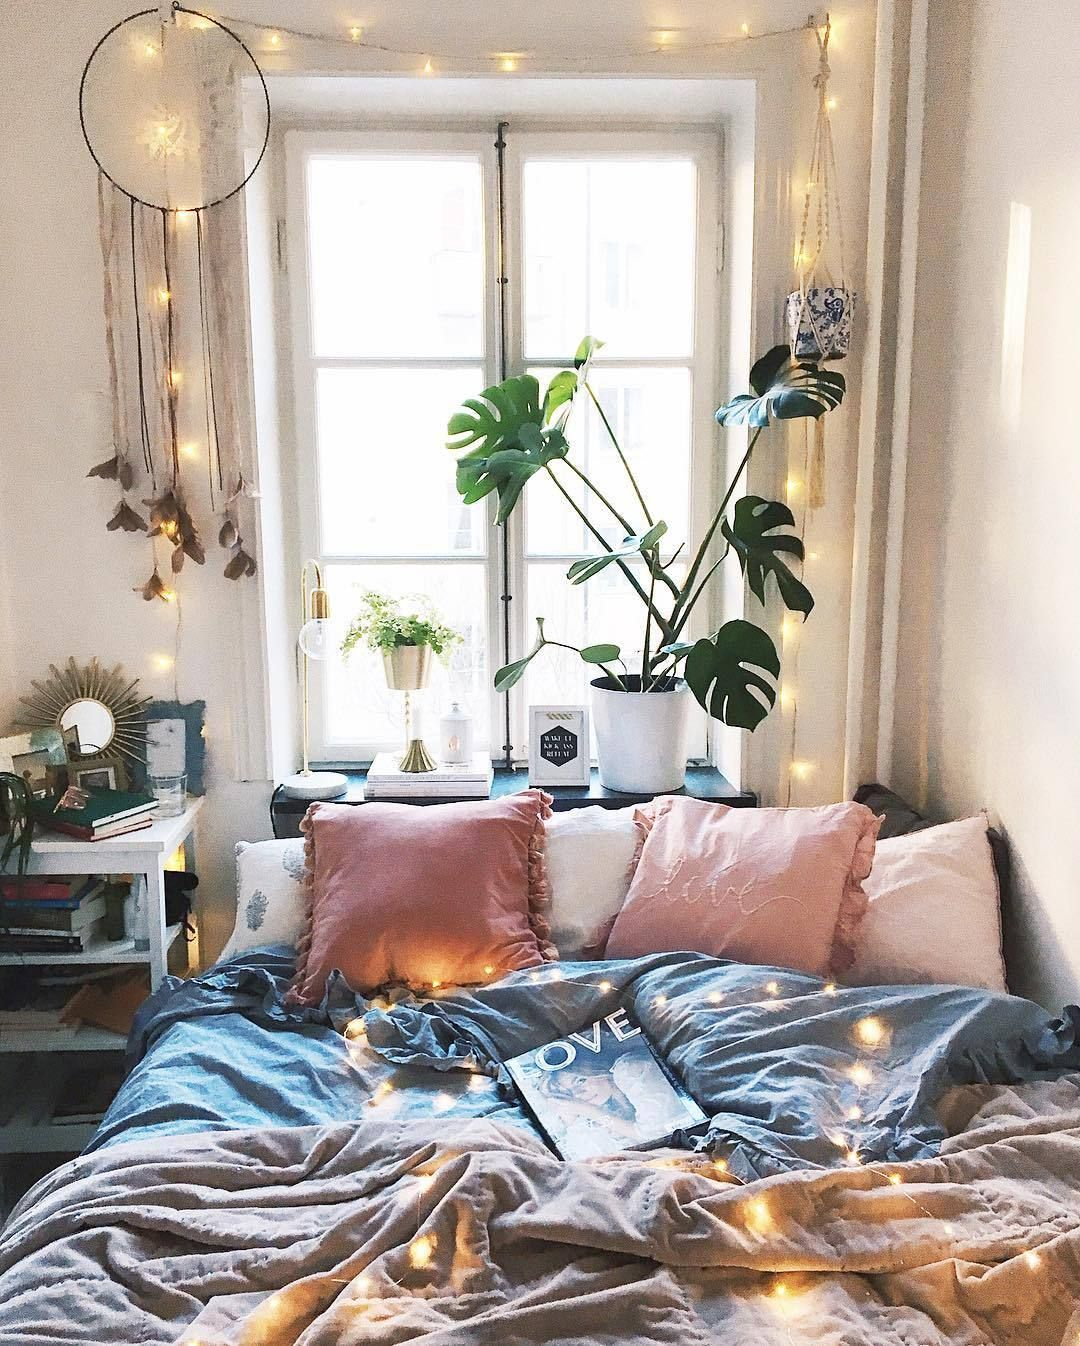 Boho & Indie Room Inspirations